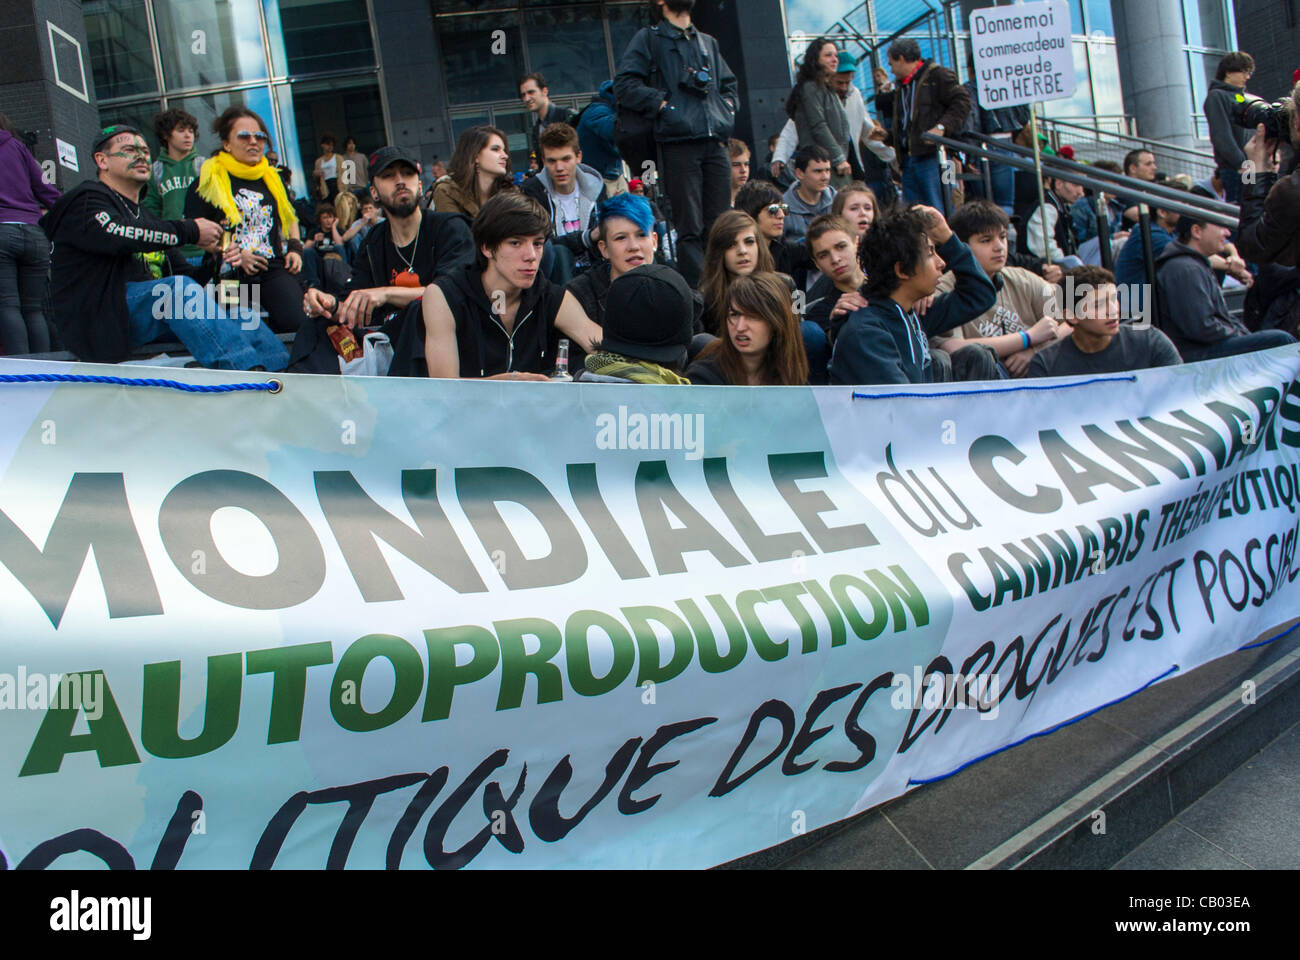 Crowd French Teenagers, Holding protest Banners at World Cannabis March for Marijuana Legalization - Paris, France - Stock Image